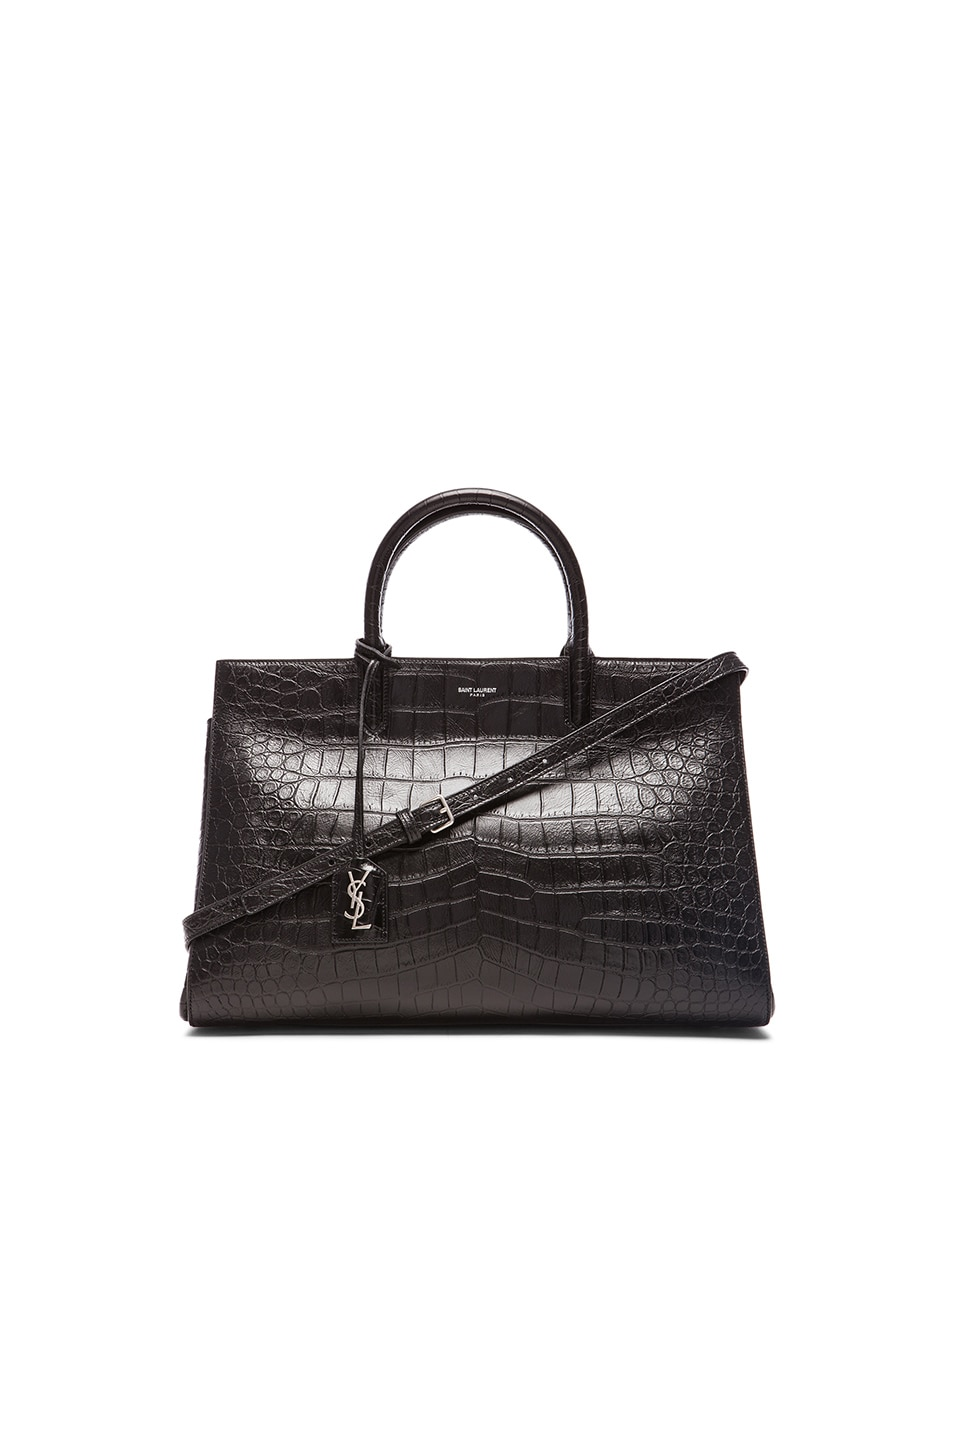 3a6482cba611 Image 1 of Saint Laurent Medium Monogram Croc Embossed Cabas Bag in Black